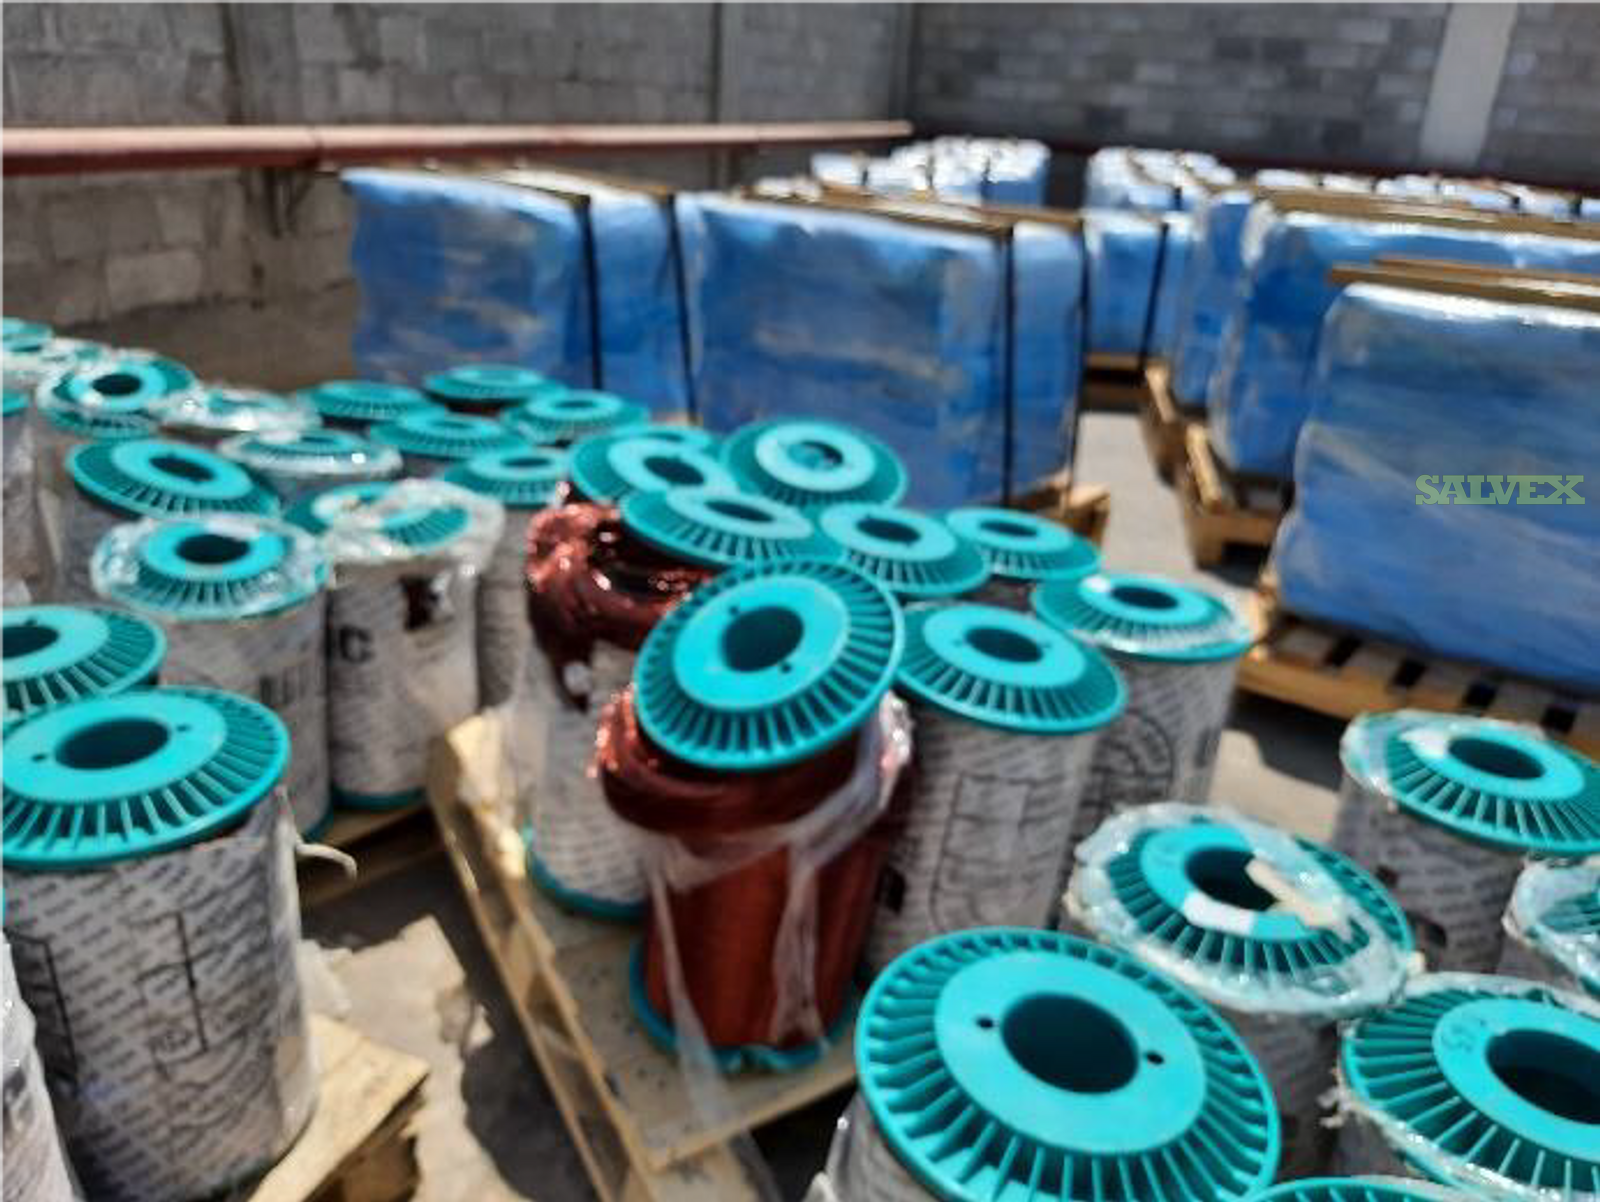 Copper Coils (Round & Flat) and Polyester Imide (12.06 Tons Material)